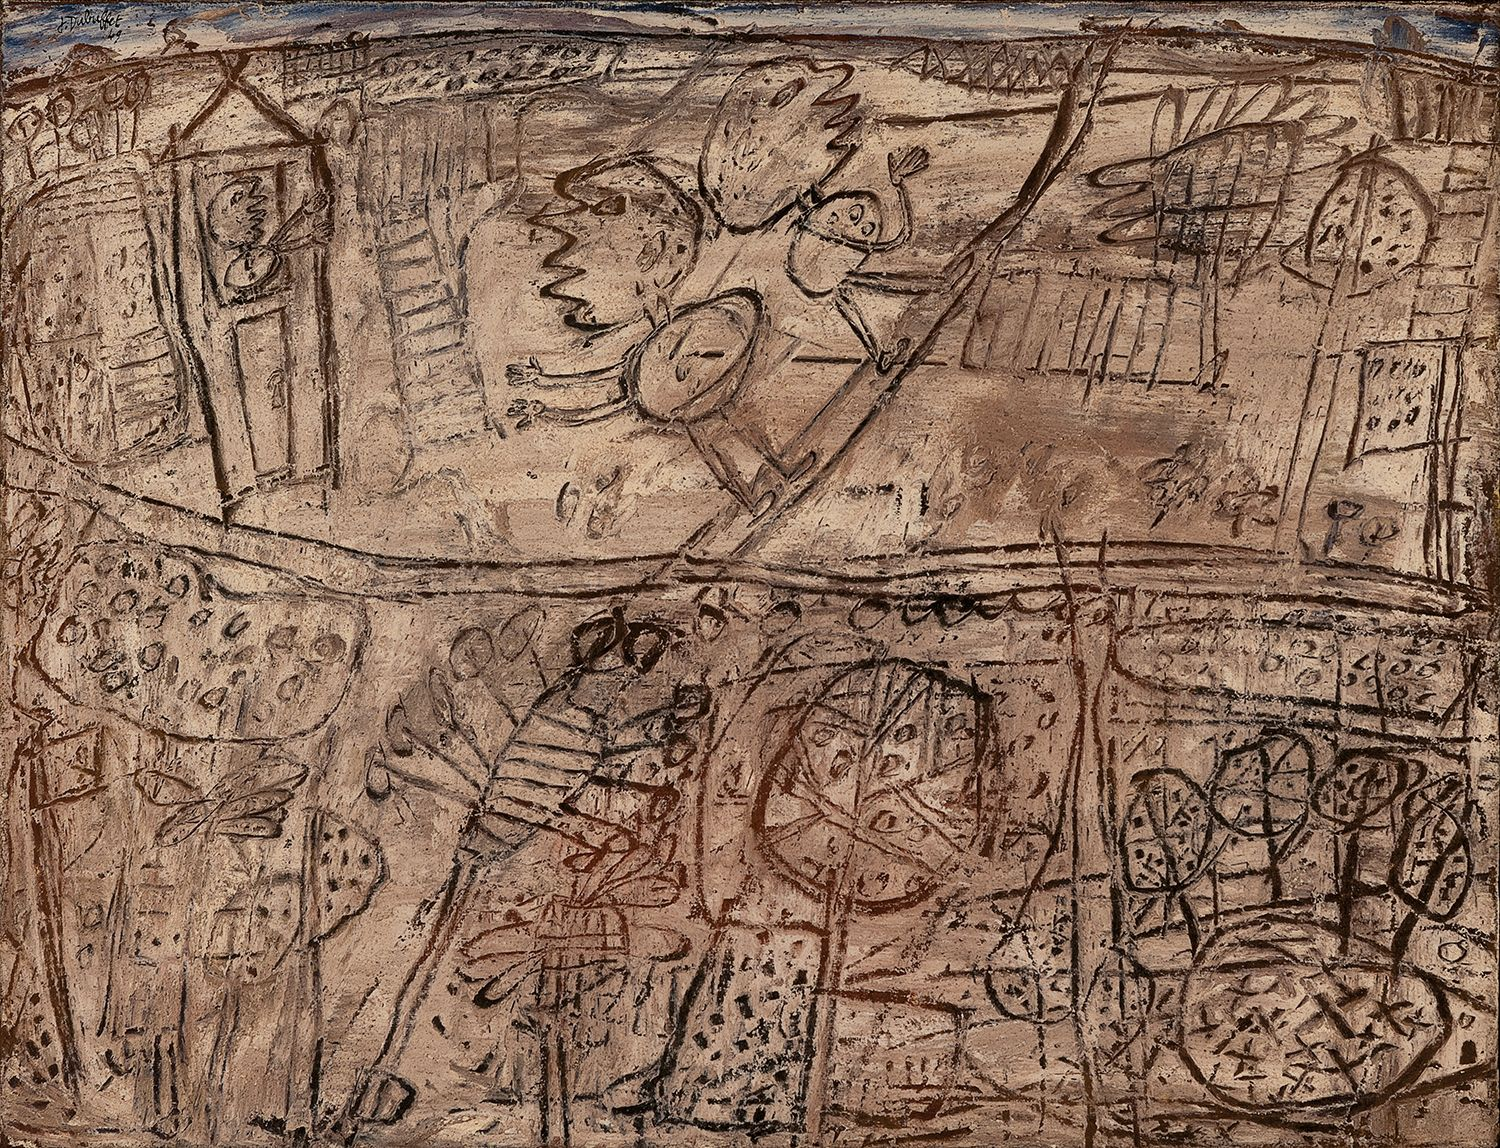 Jean Dubuffet, L'adieu à la fenêtre [Farewell from the Window], June 3, 1949